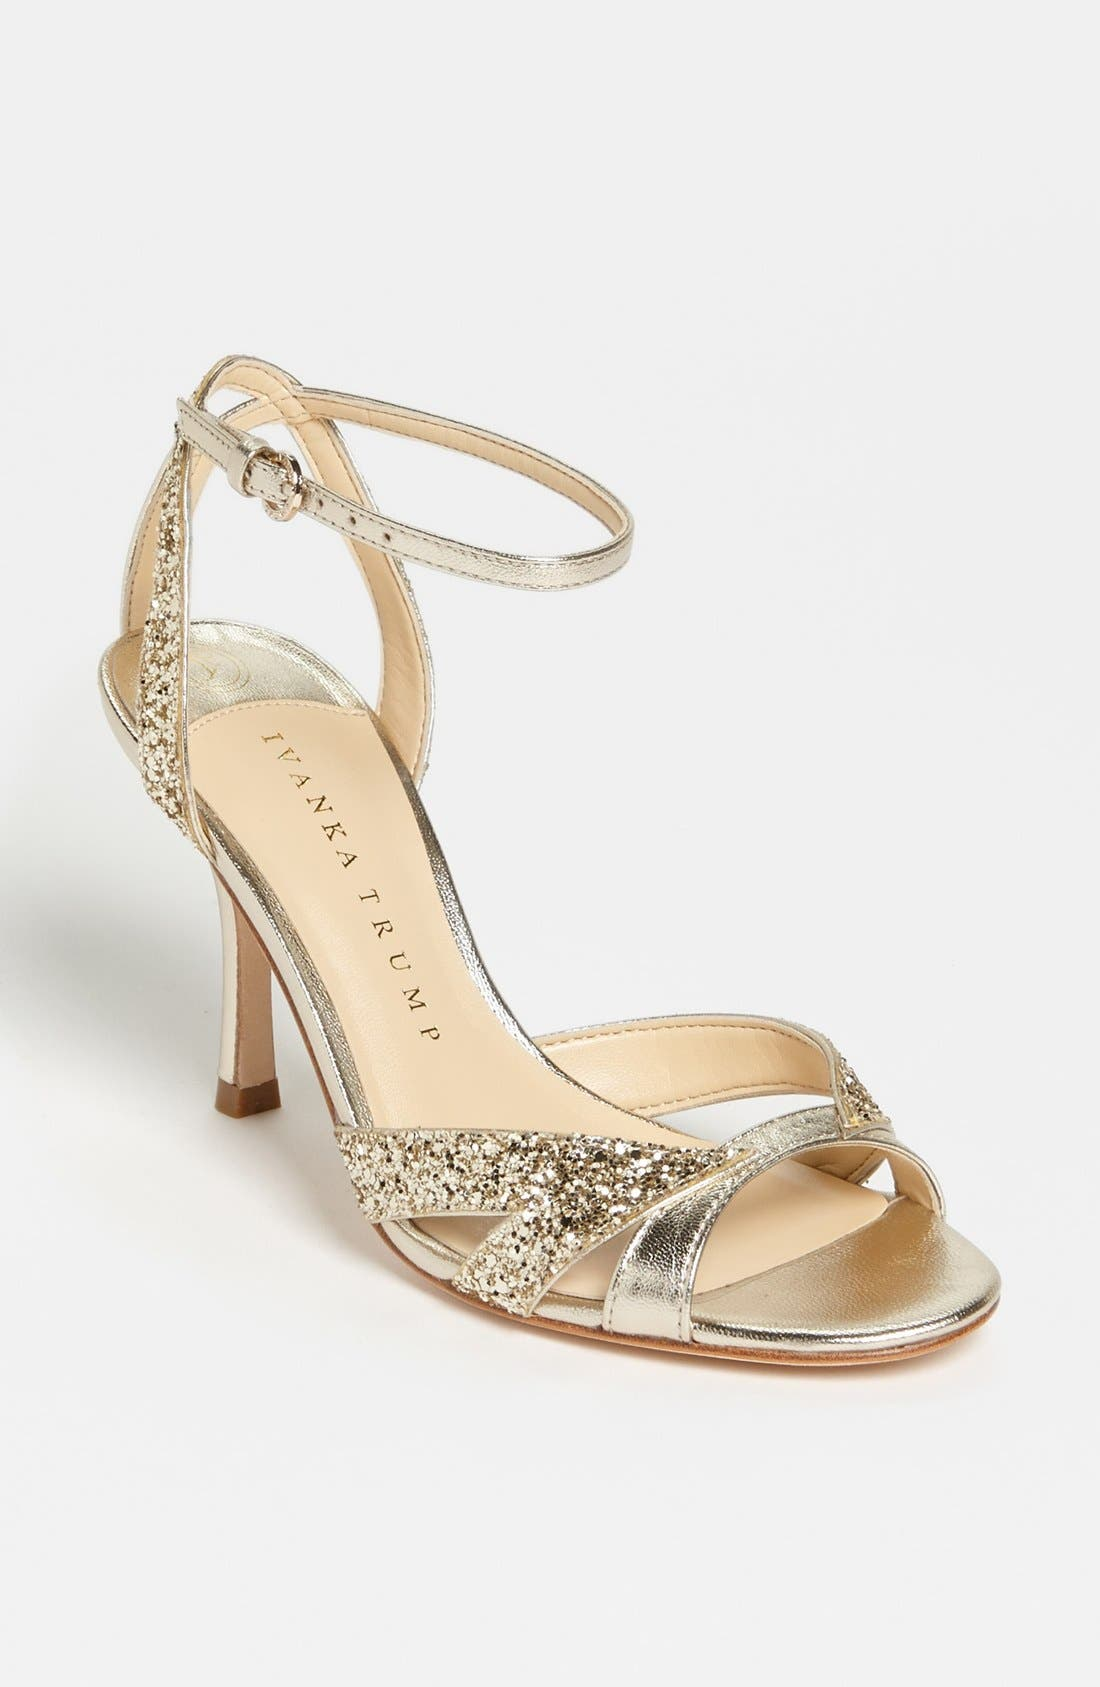 Alternate Image 1 Selected - Ivanka Trump 'Anita' Sandal